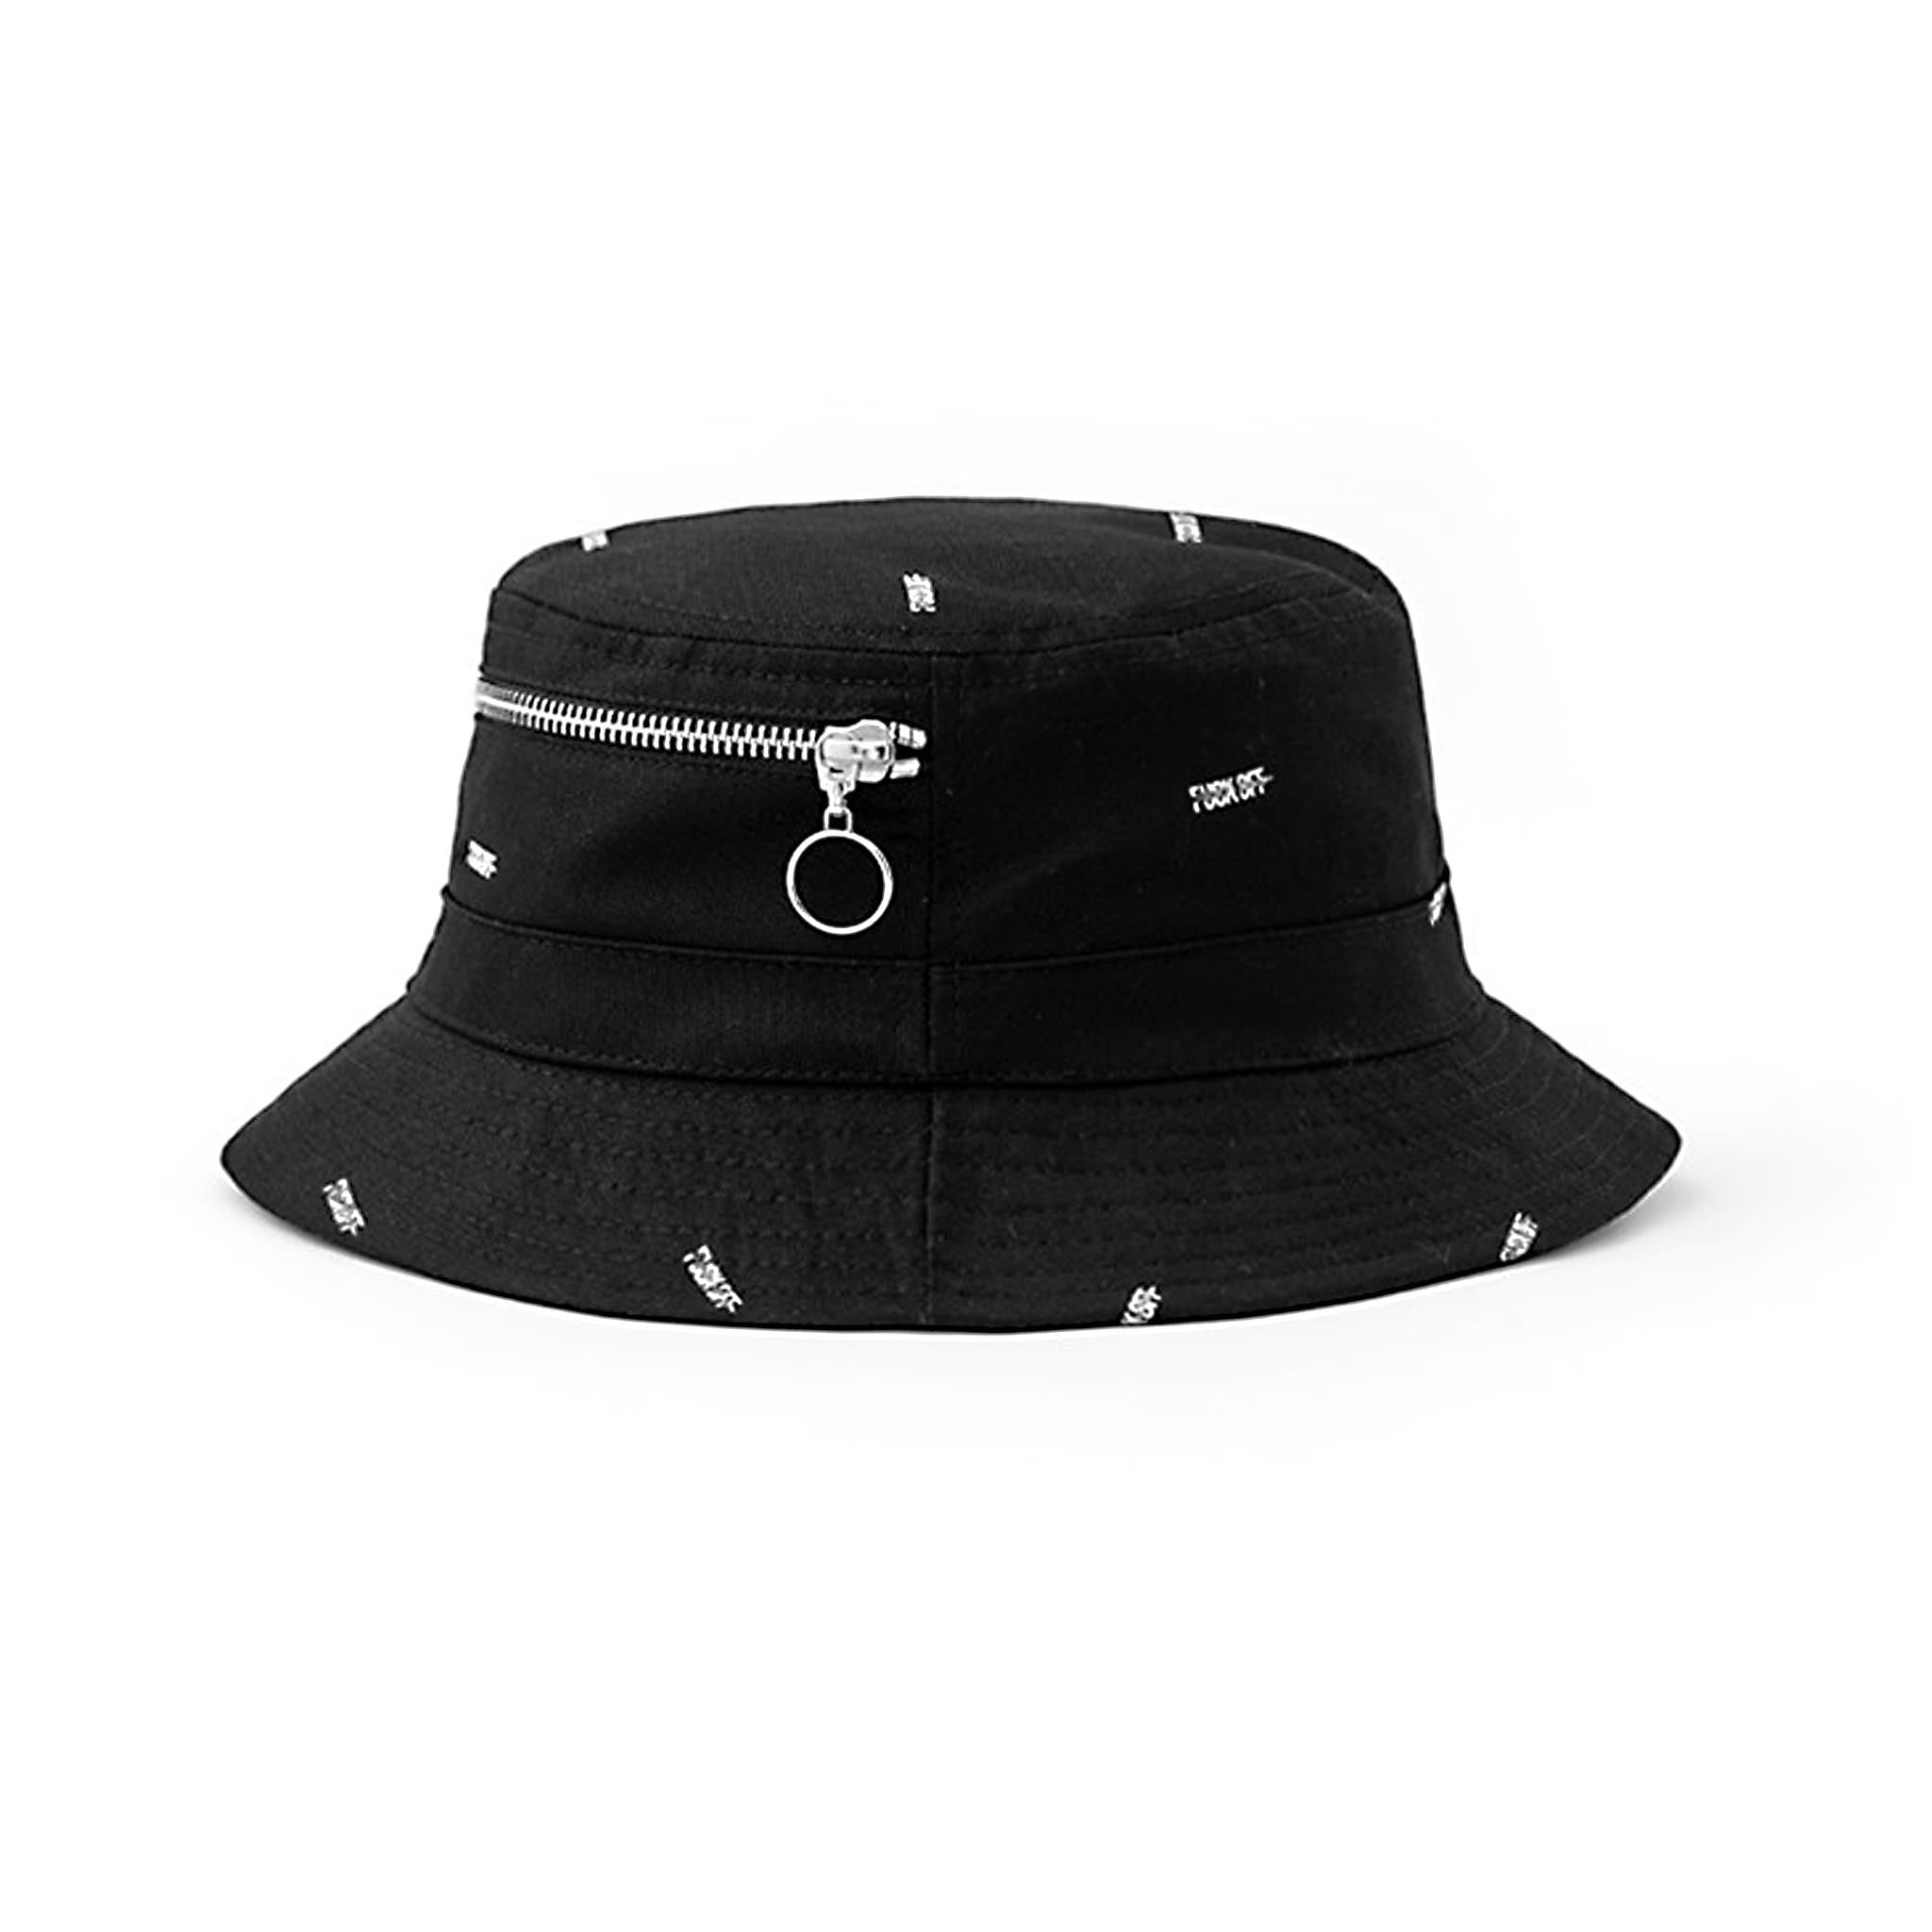 STAMPD F*** Off Bucket Hat Black